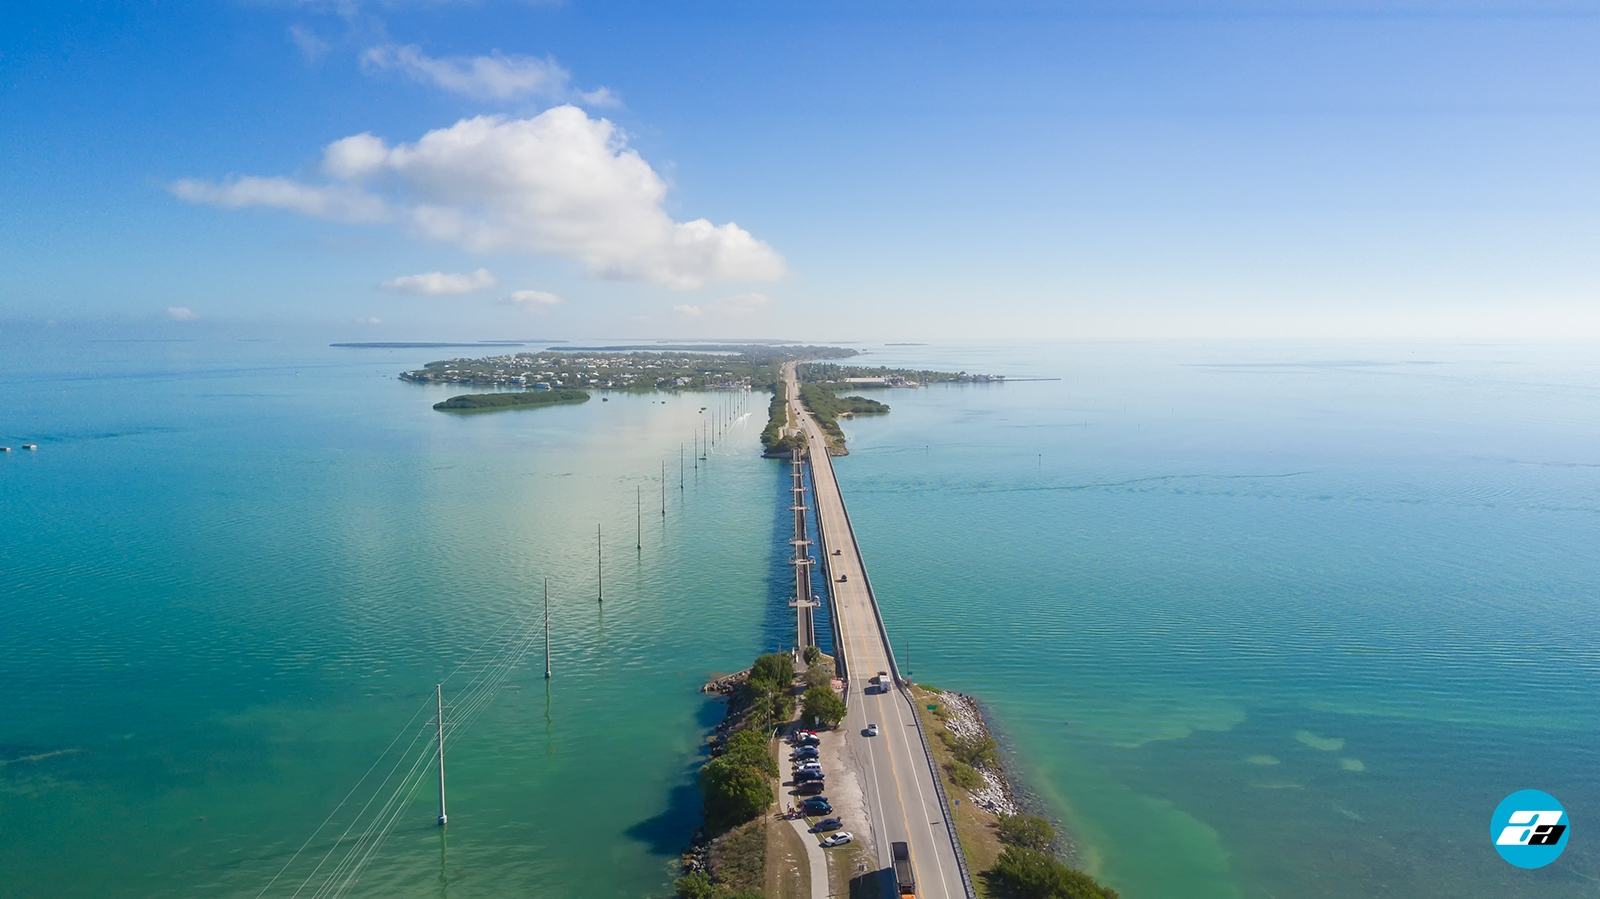 Overseas Highway, FL USA. Road to Key West. Aerial View